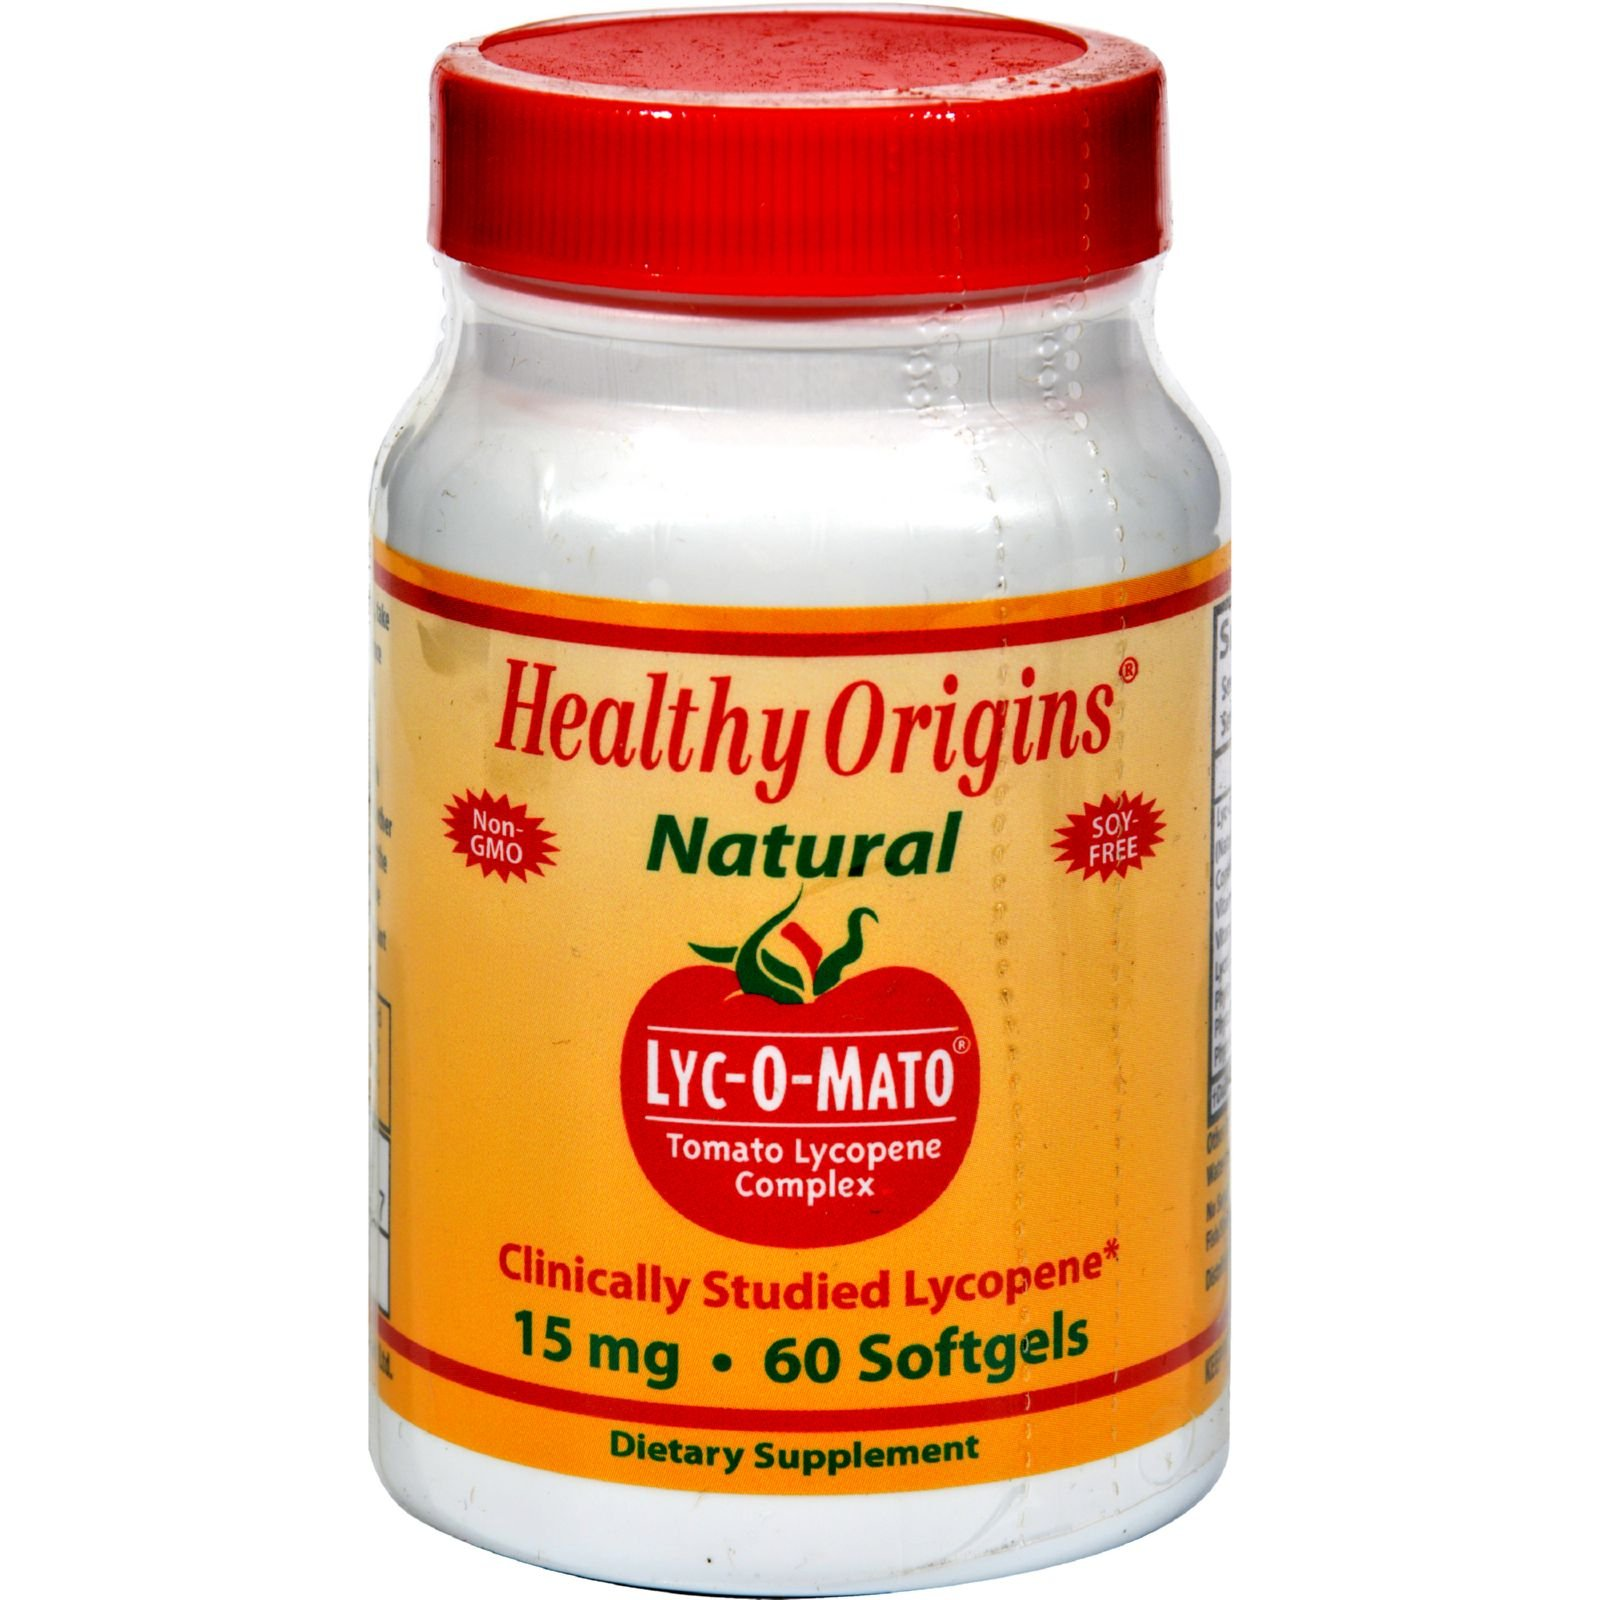 Healthy Origins Lyc-O-Mato - 15 mg - Non GMO - Soy Free - 60 Softgels (Pack of 2)